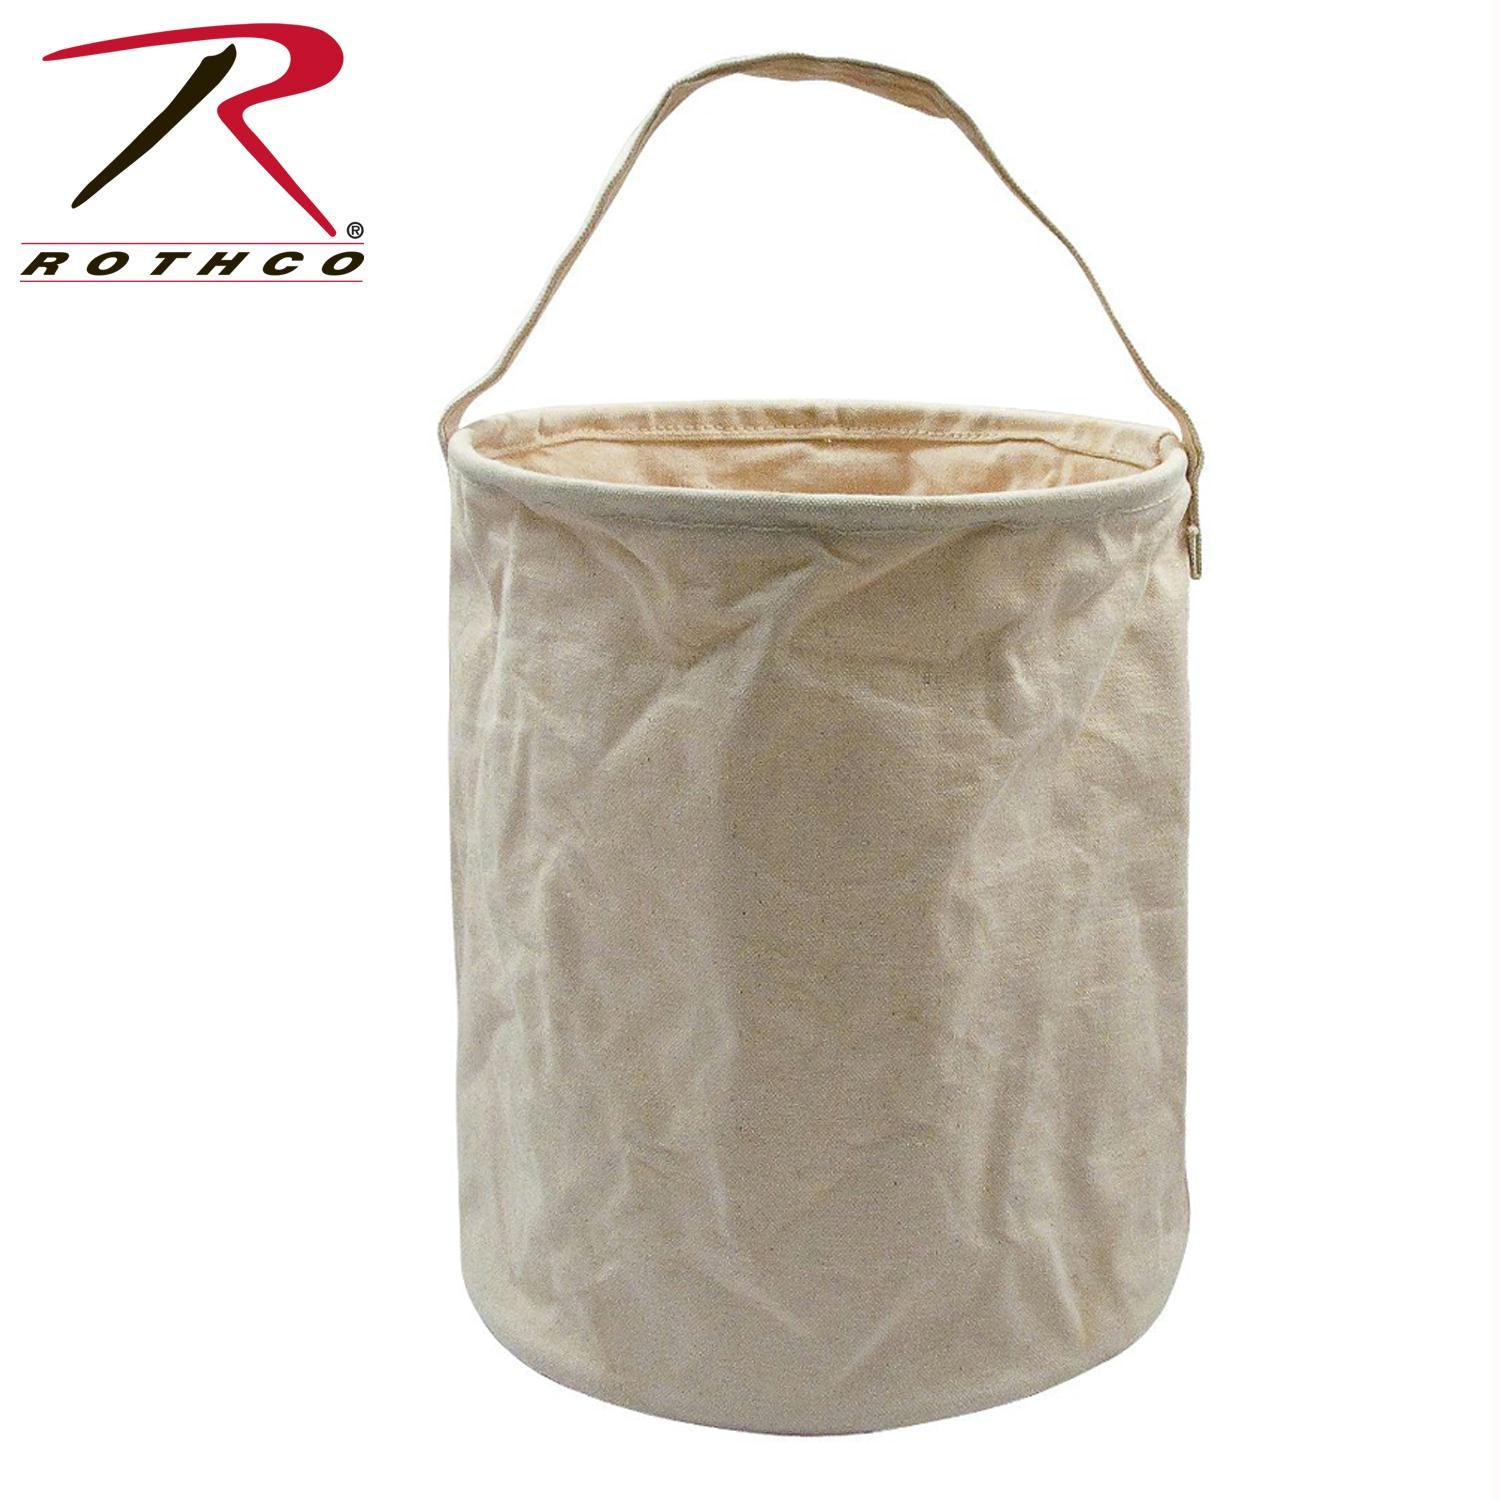 Rothco Canvas Water Bucket - Natural / M